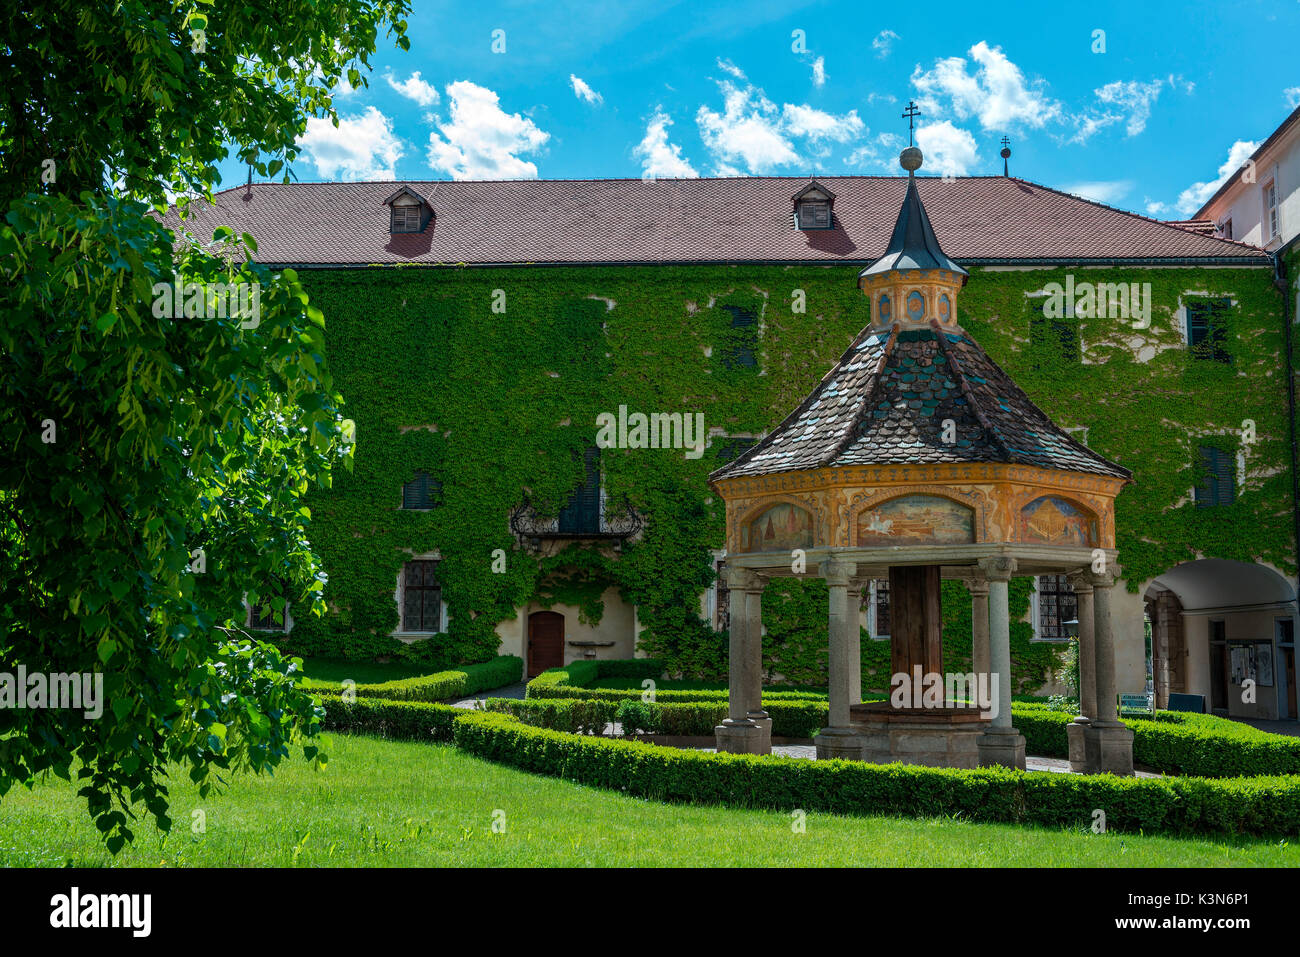 Novacella/Neustift, South Tyrol, Italy. The Fountain of Miracles in  Monastery Novacella/Neustift shows images of the seven wonders of the world and the Monastery as the eighth wonder of the world. - Stock Image